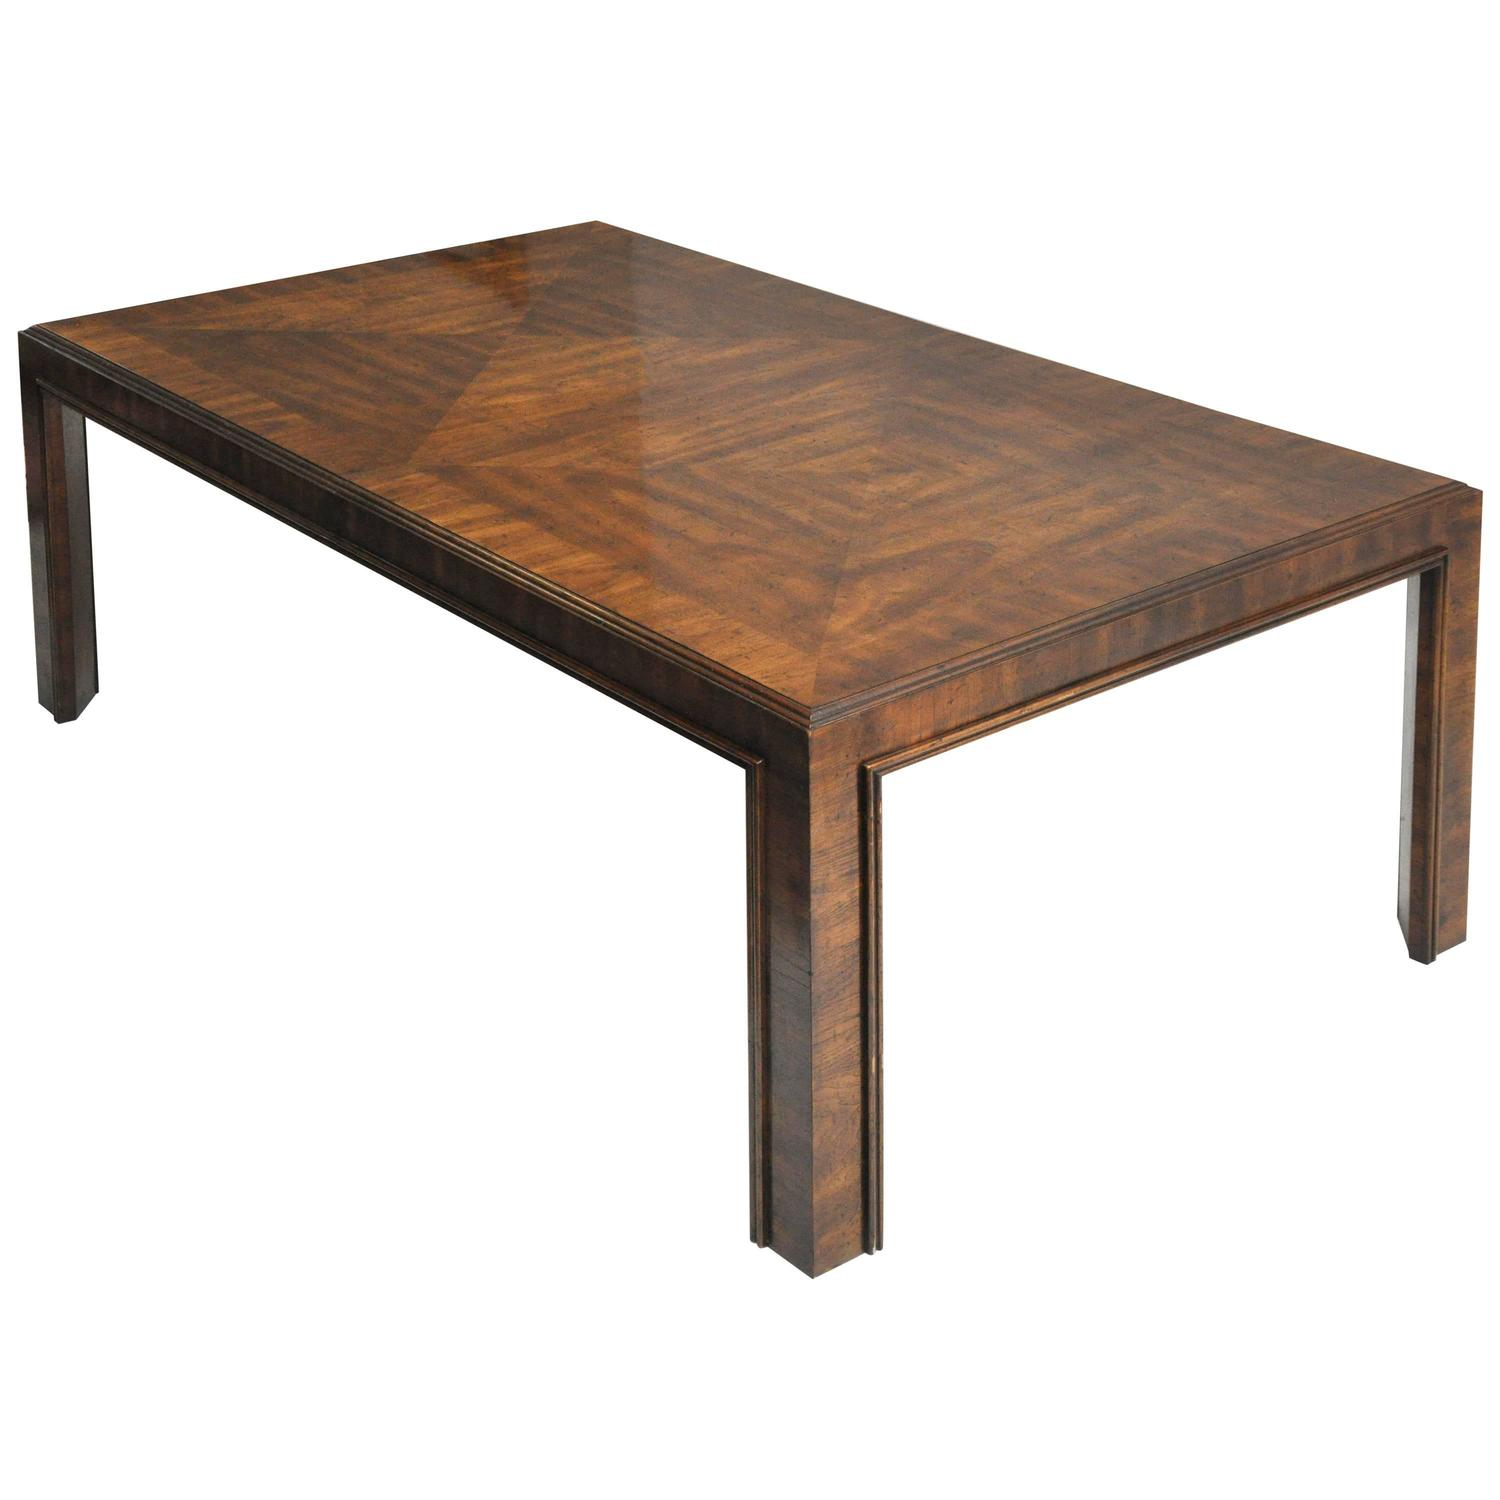 Drexel long dining table with unique woodgrain design for for Unusual dining tables for sale